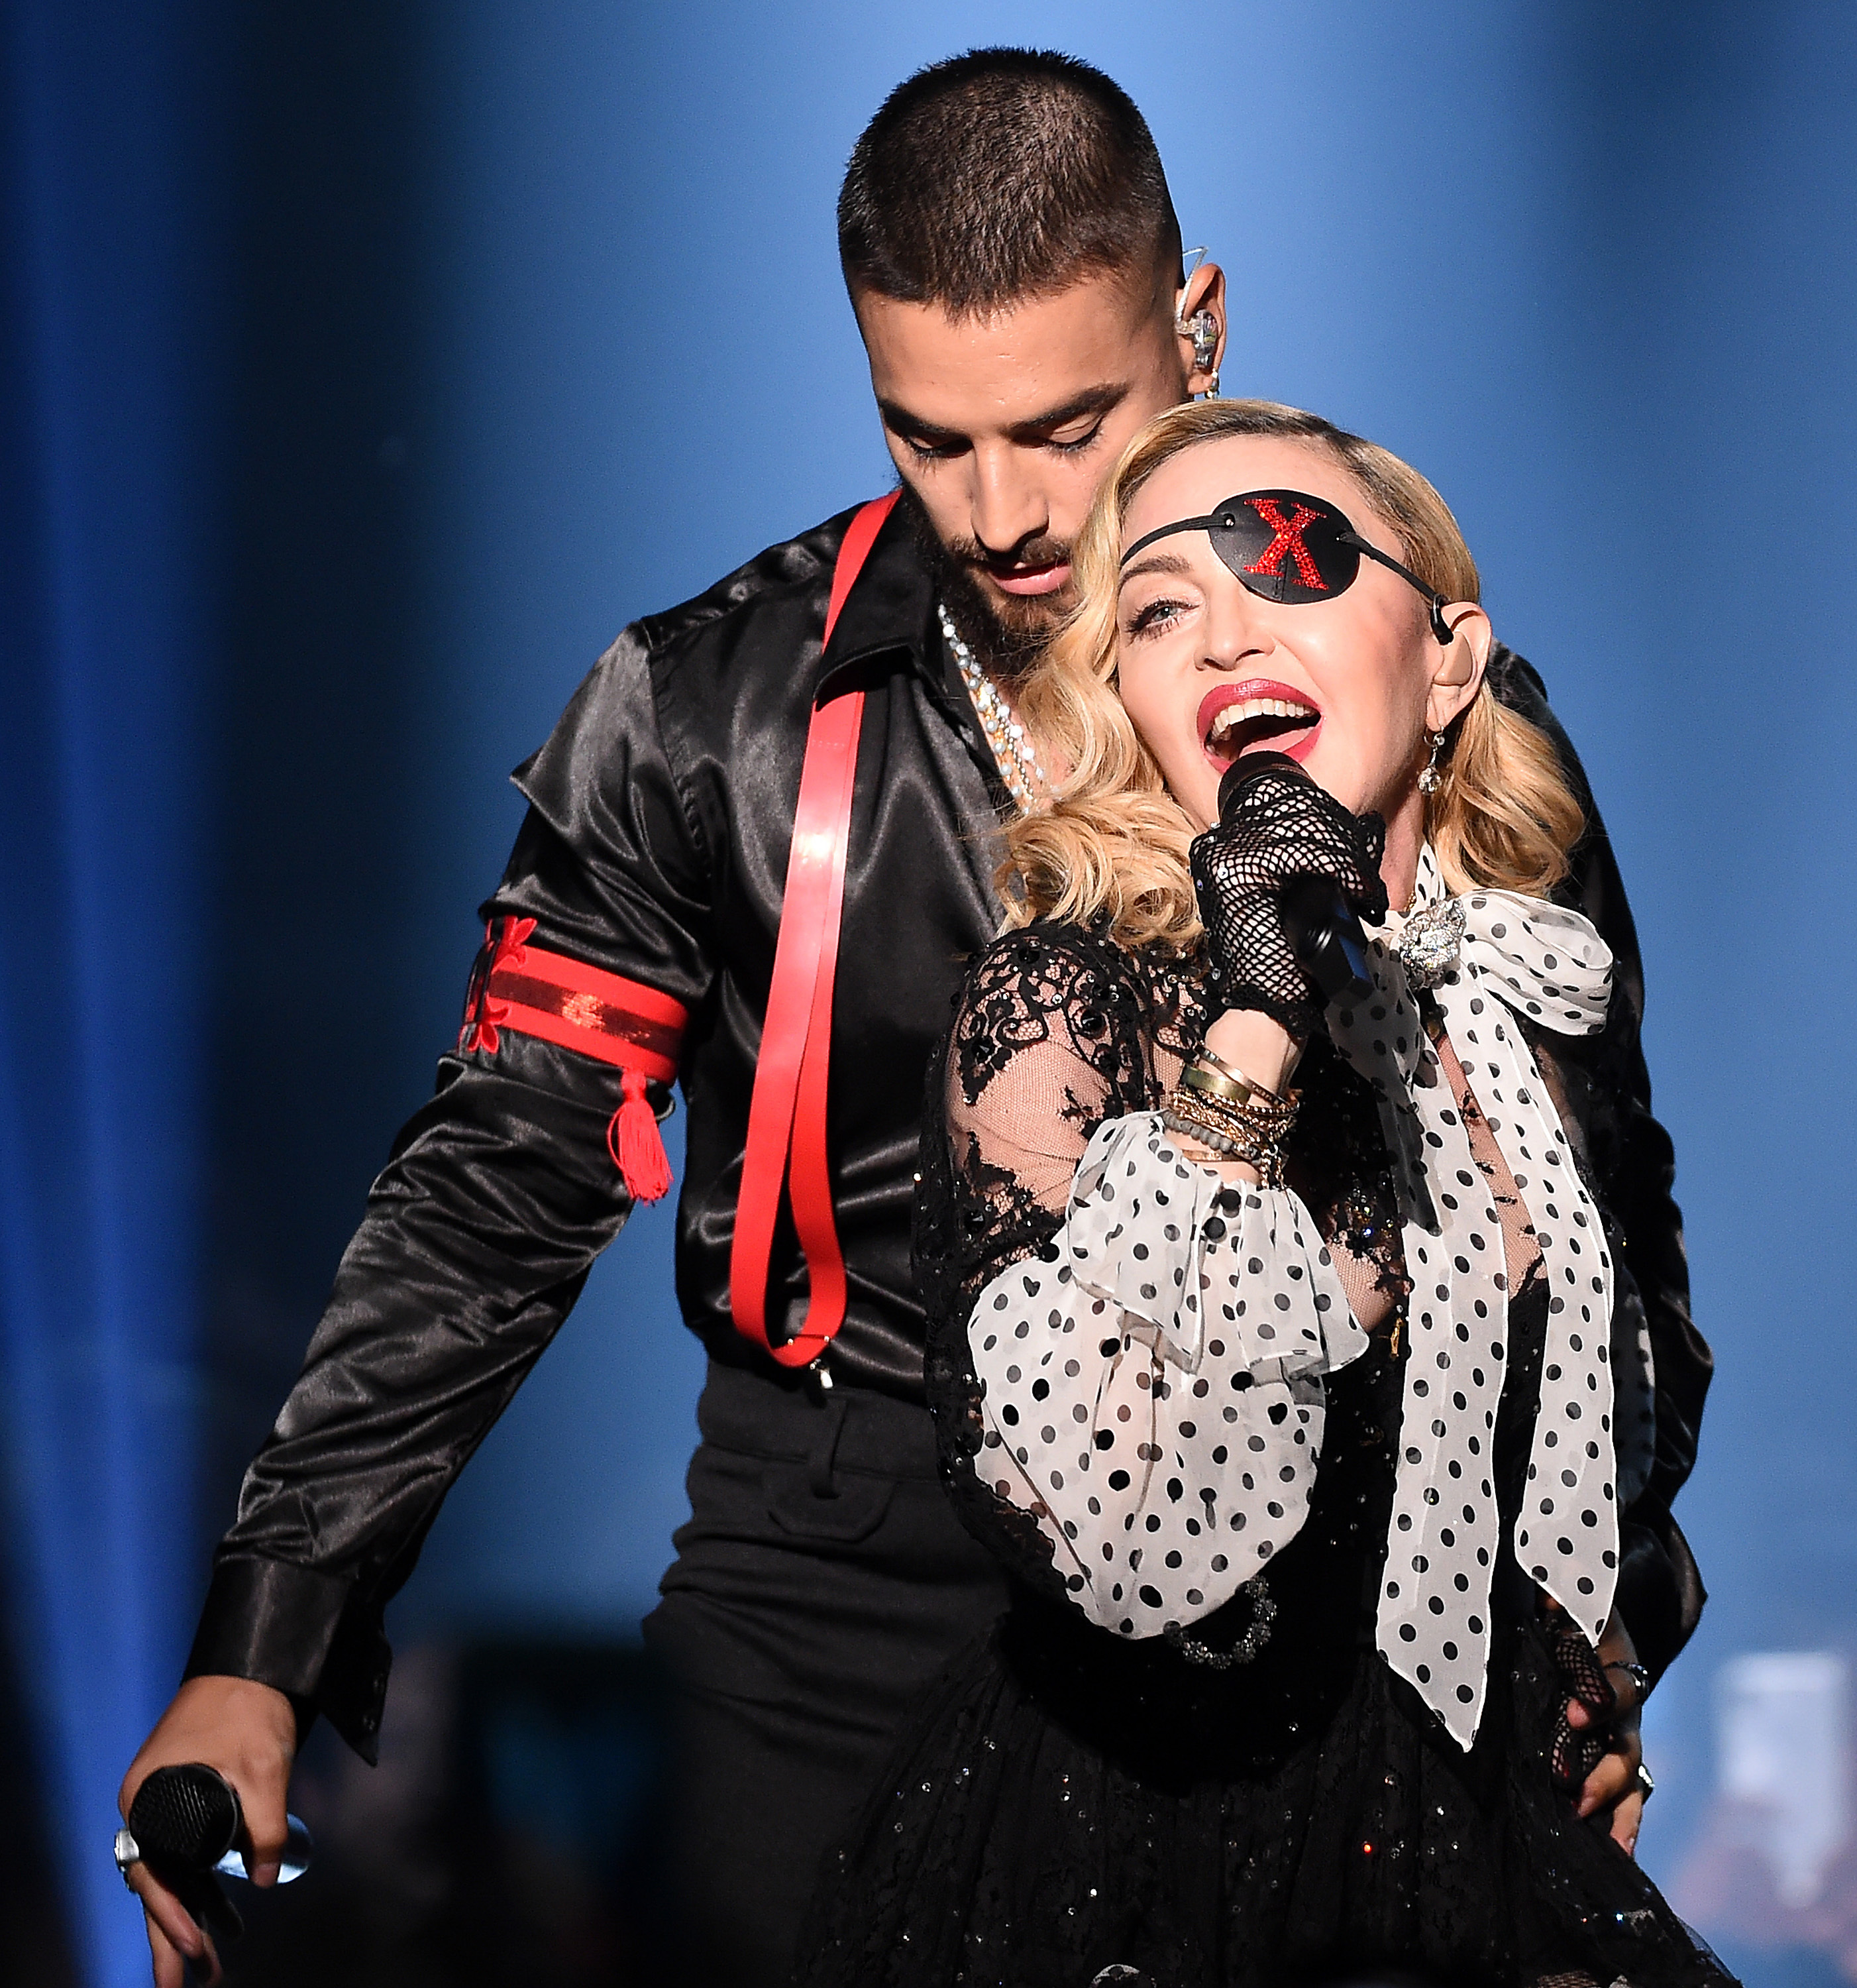 Madonna and Maluma perform at the Billboard Music Awards at the MGM Grand Garden Arena in Las Vegas on May 1, 2019.